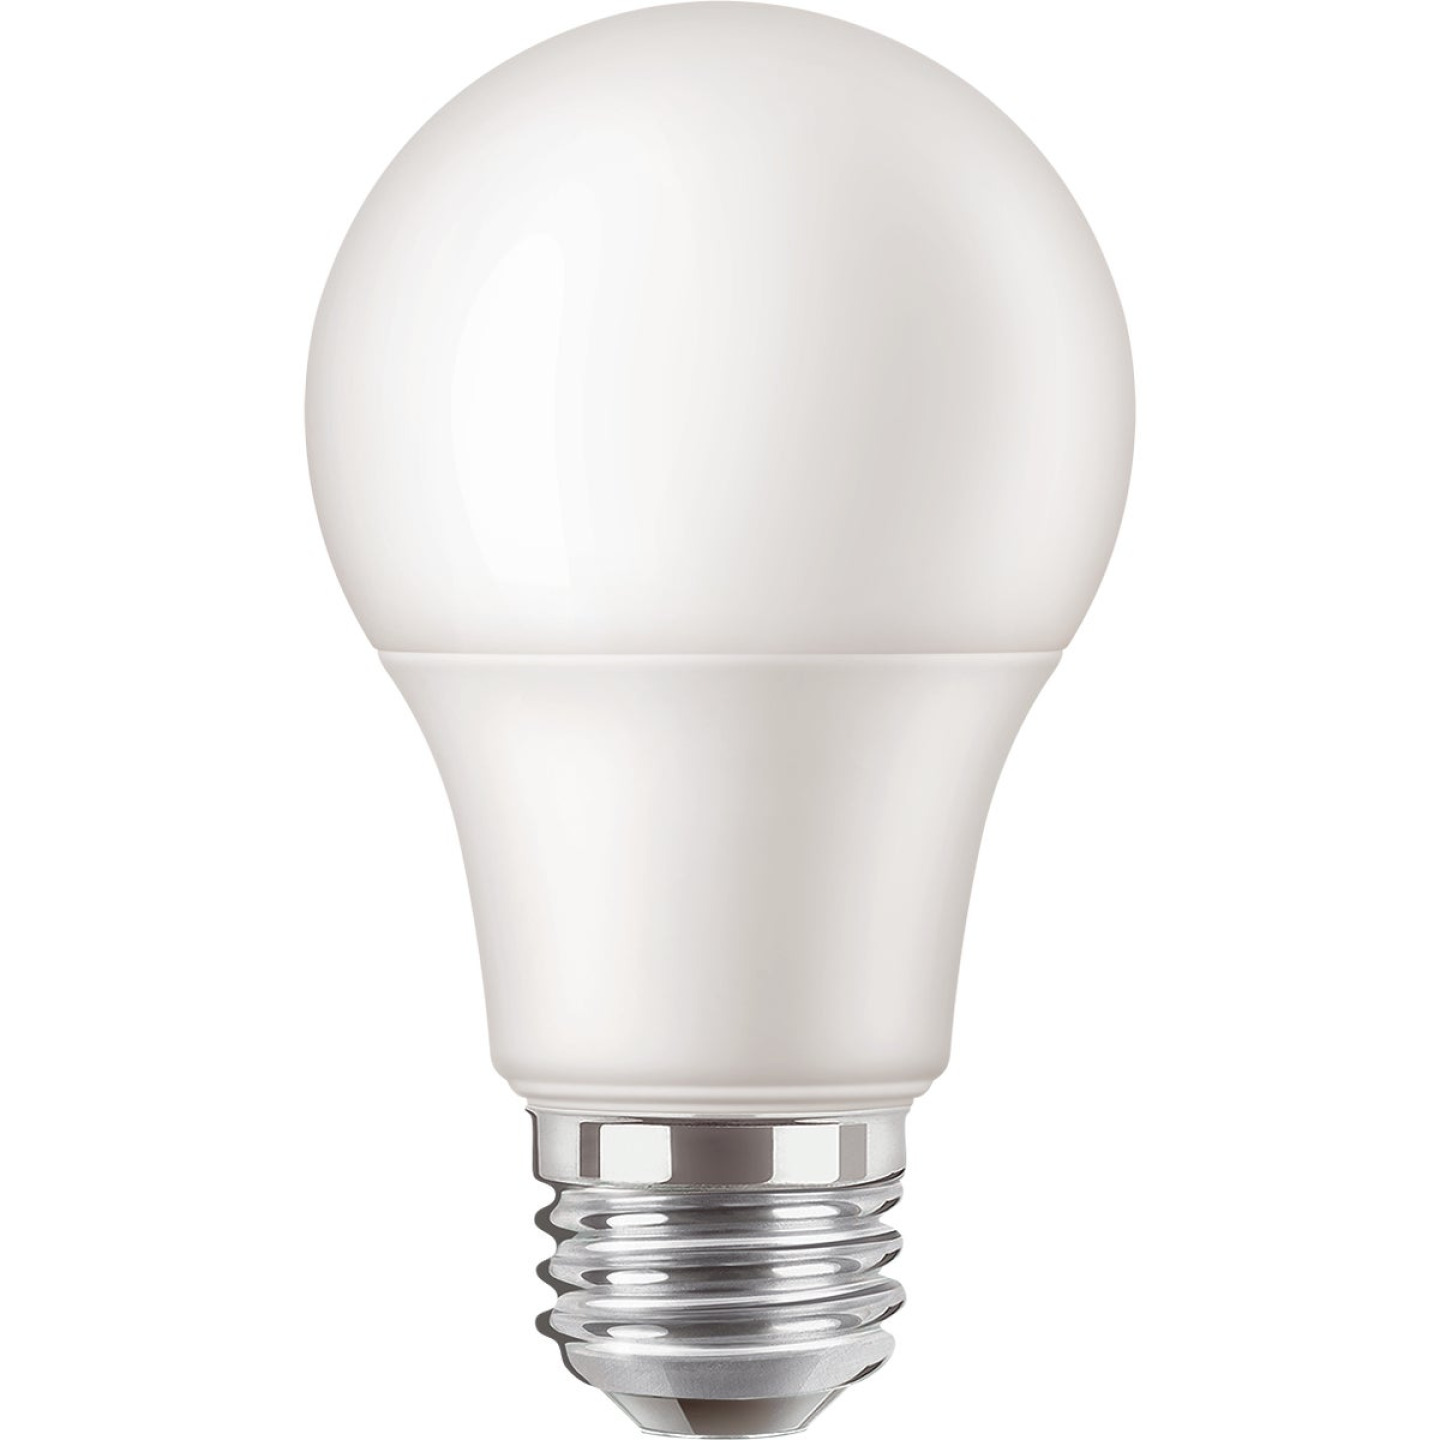 Do it 60W Equivalent Soft White A19 Medium LED Light Bulb (10-Pack) Image 3